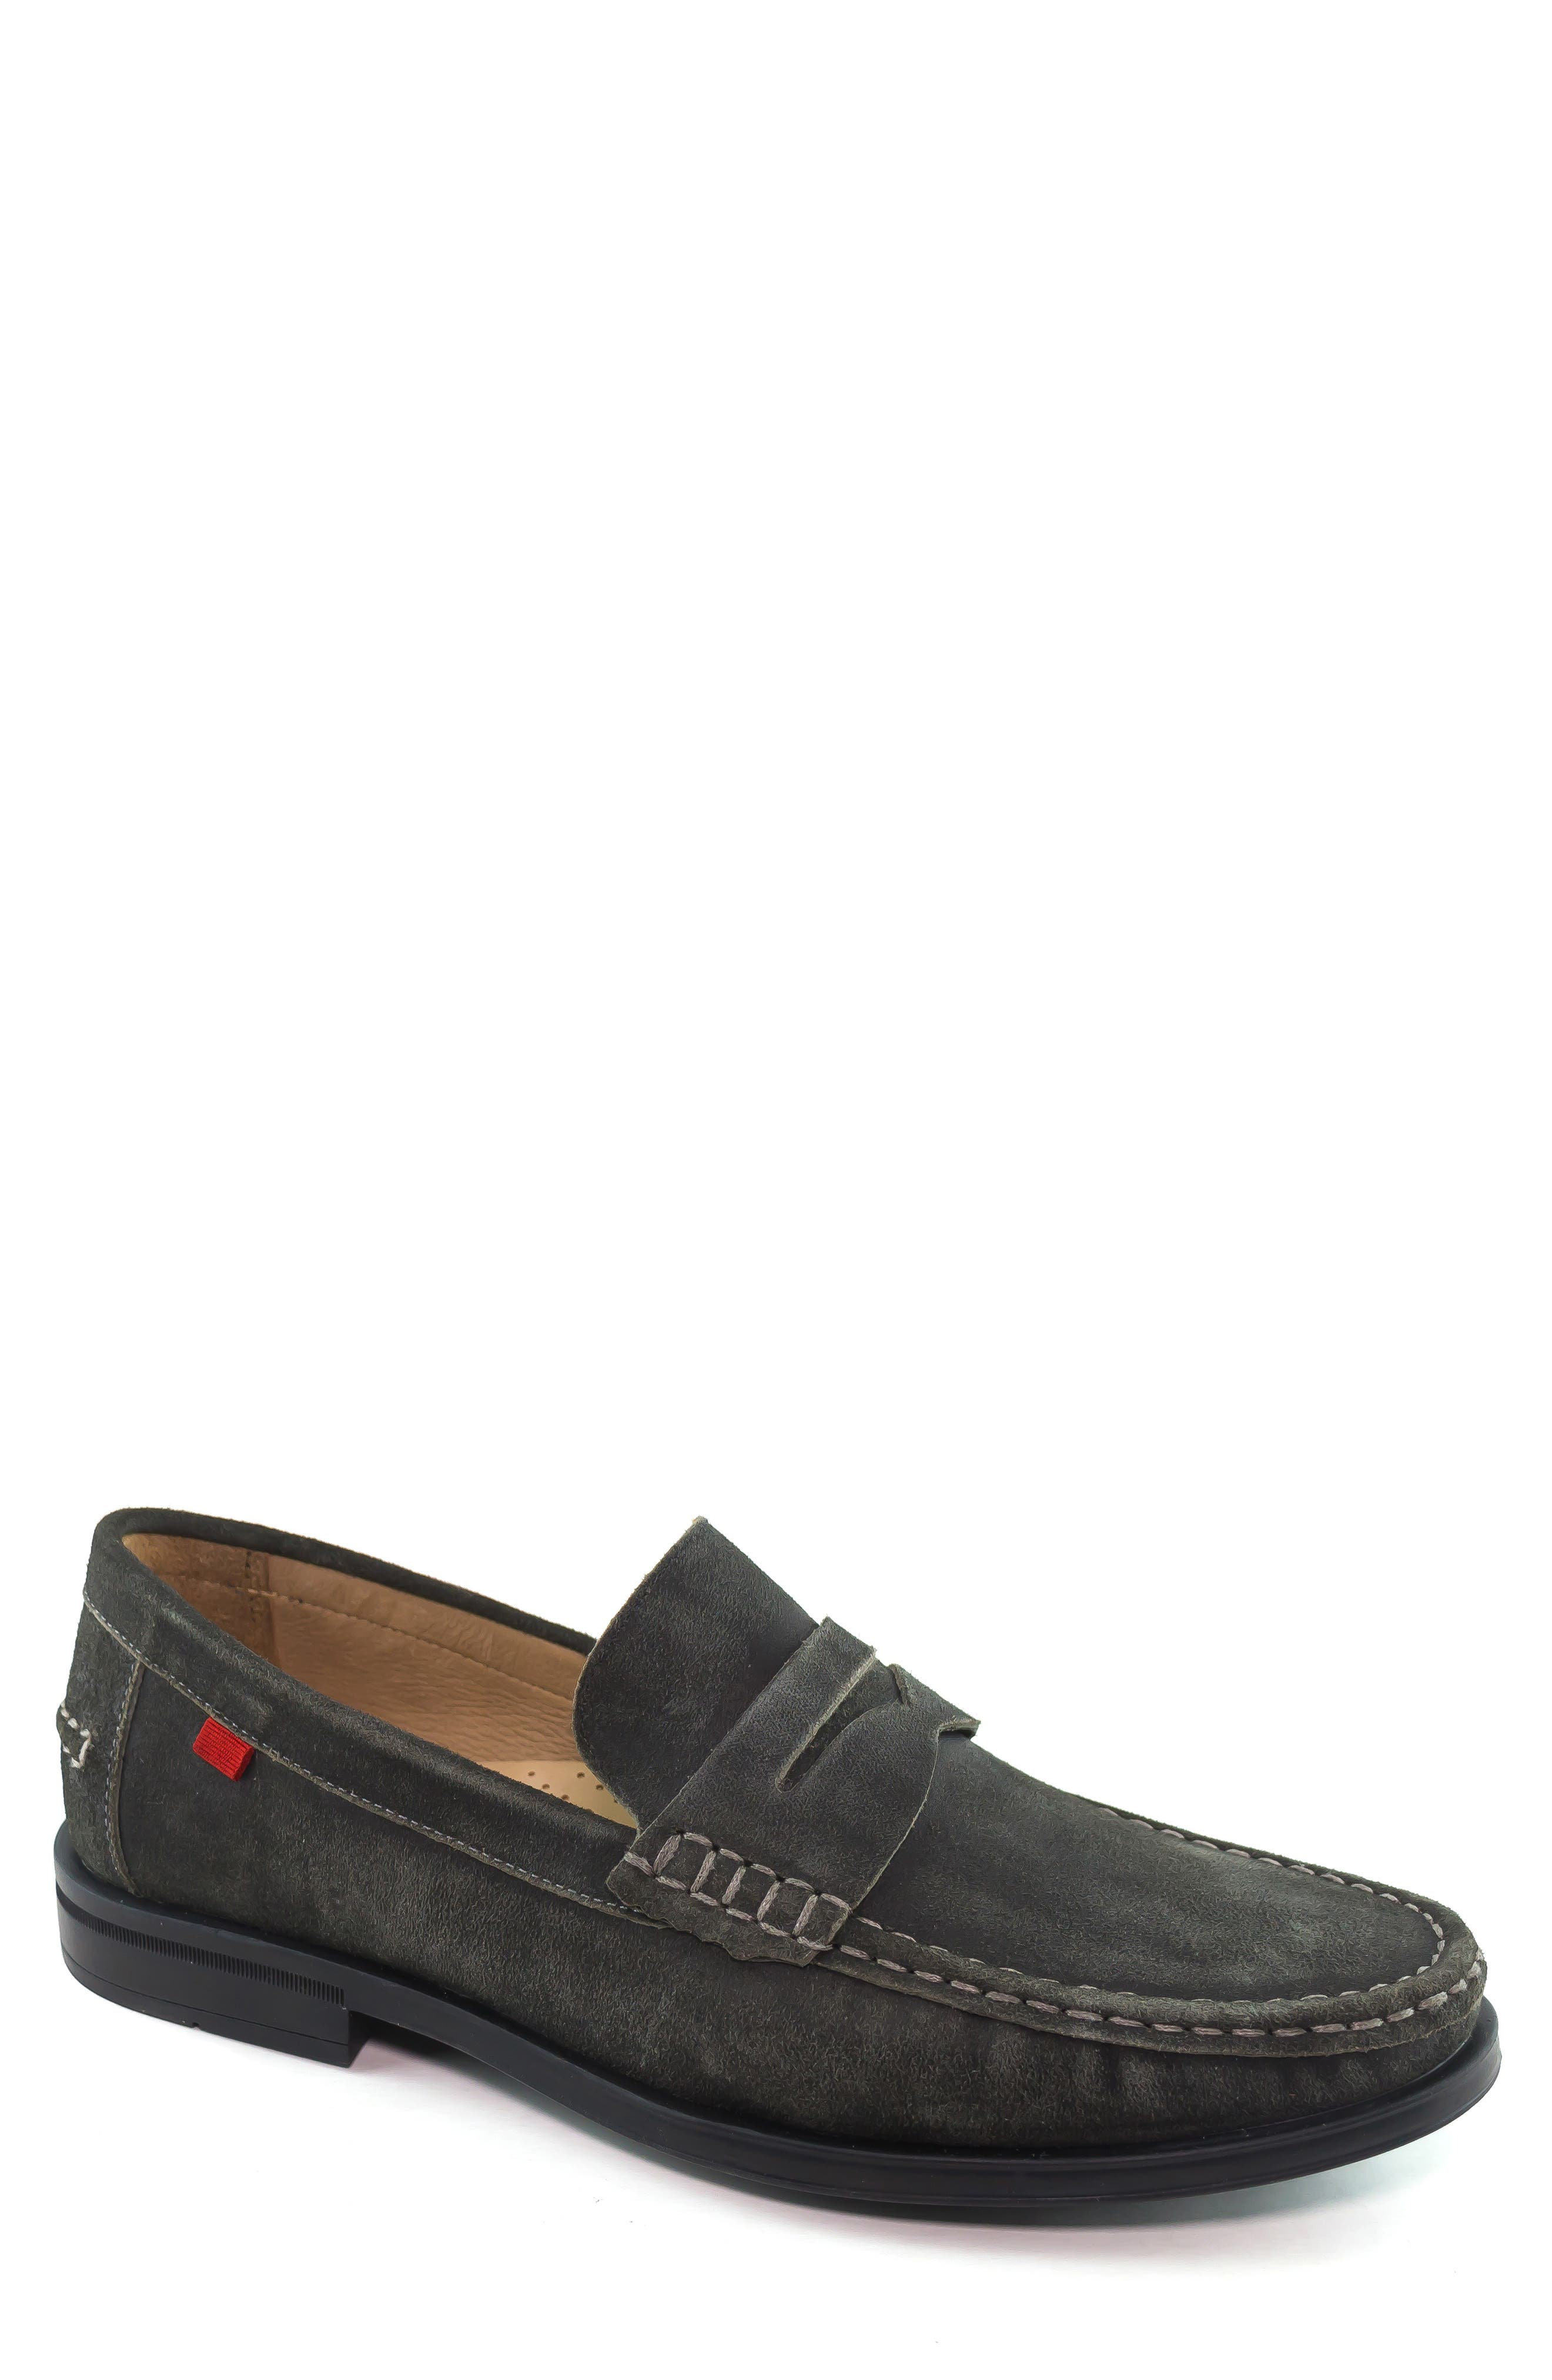 Cortland Penny Loafer,                         Main,                         color, GRAPHITE LEATHER